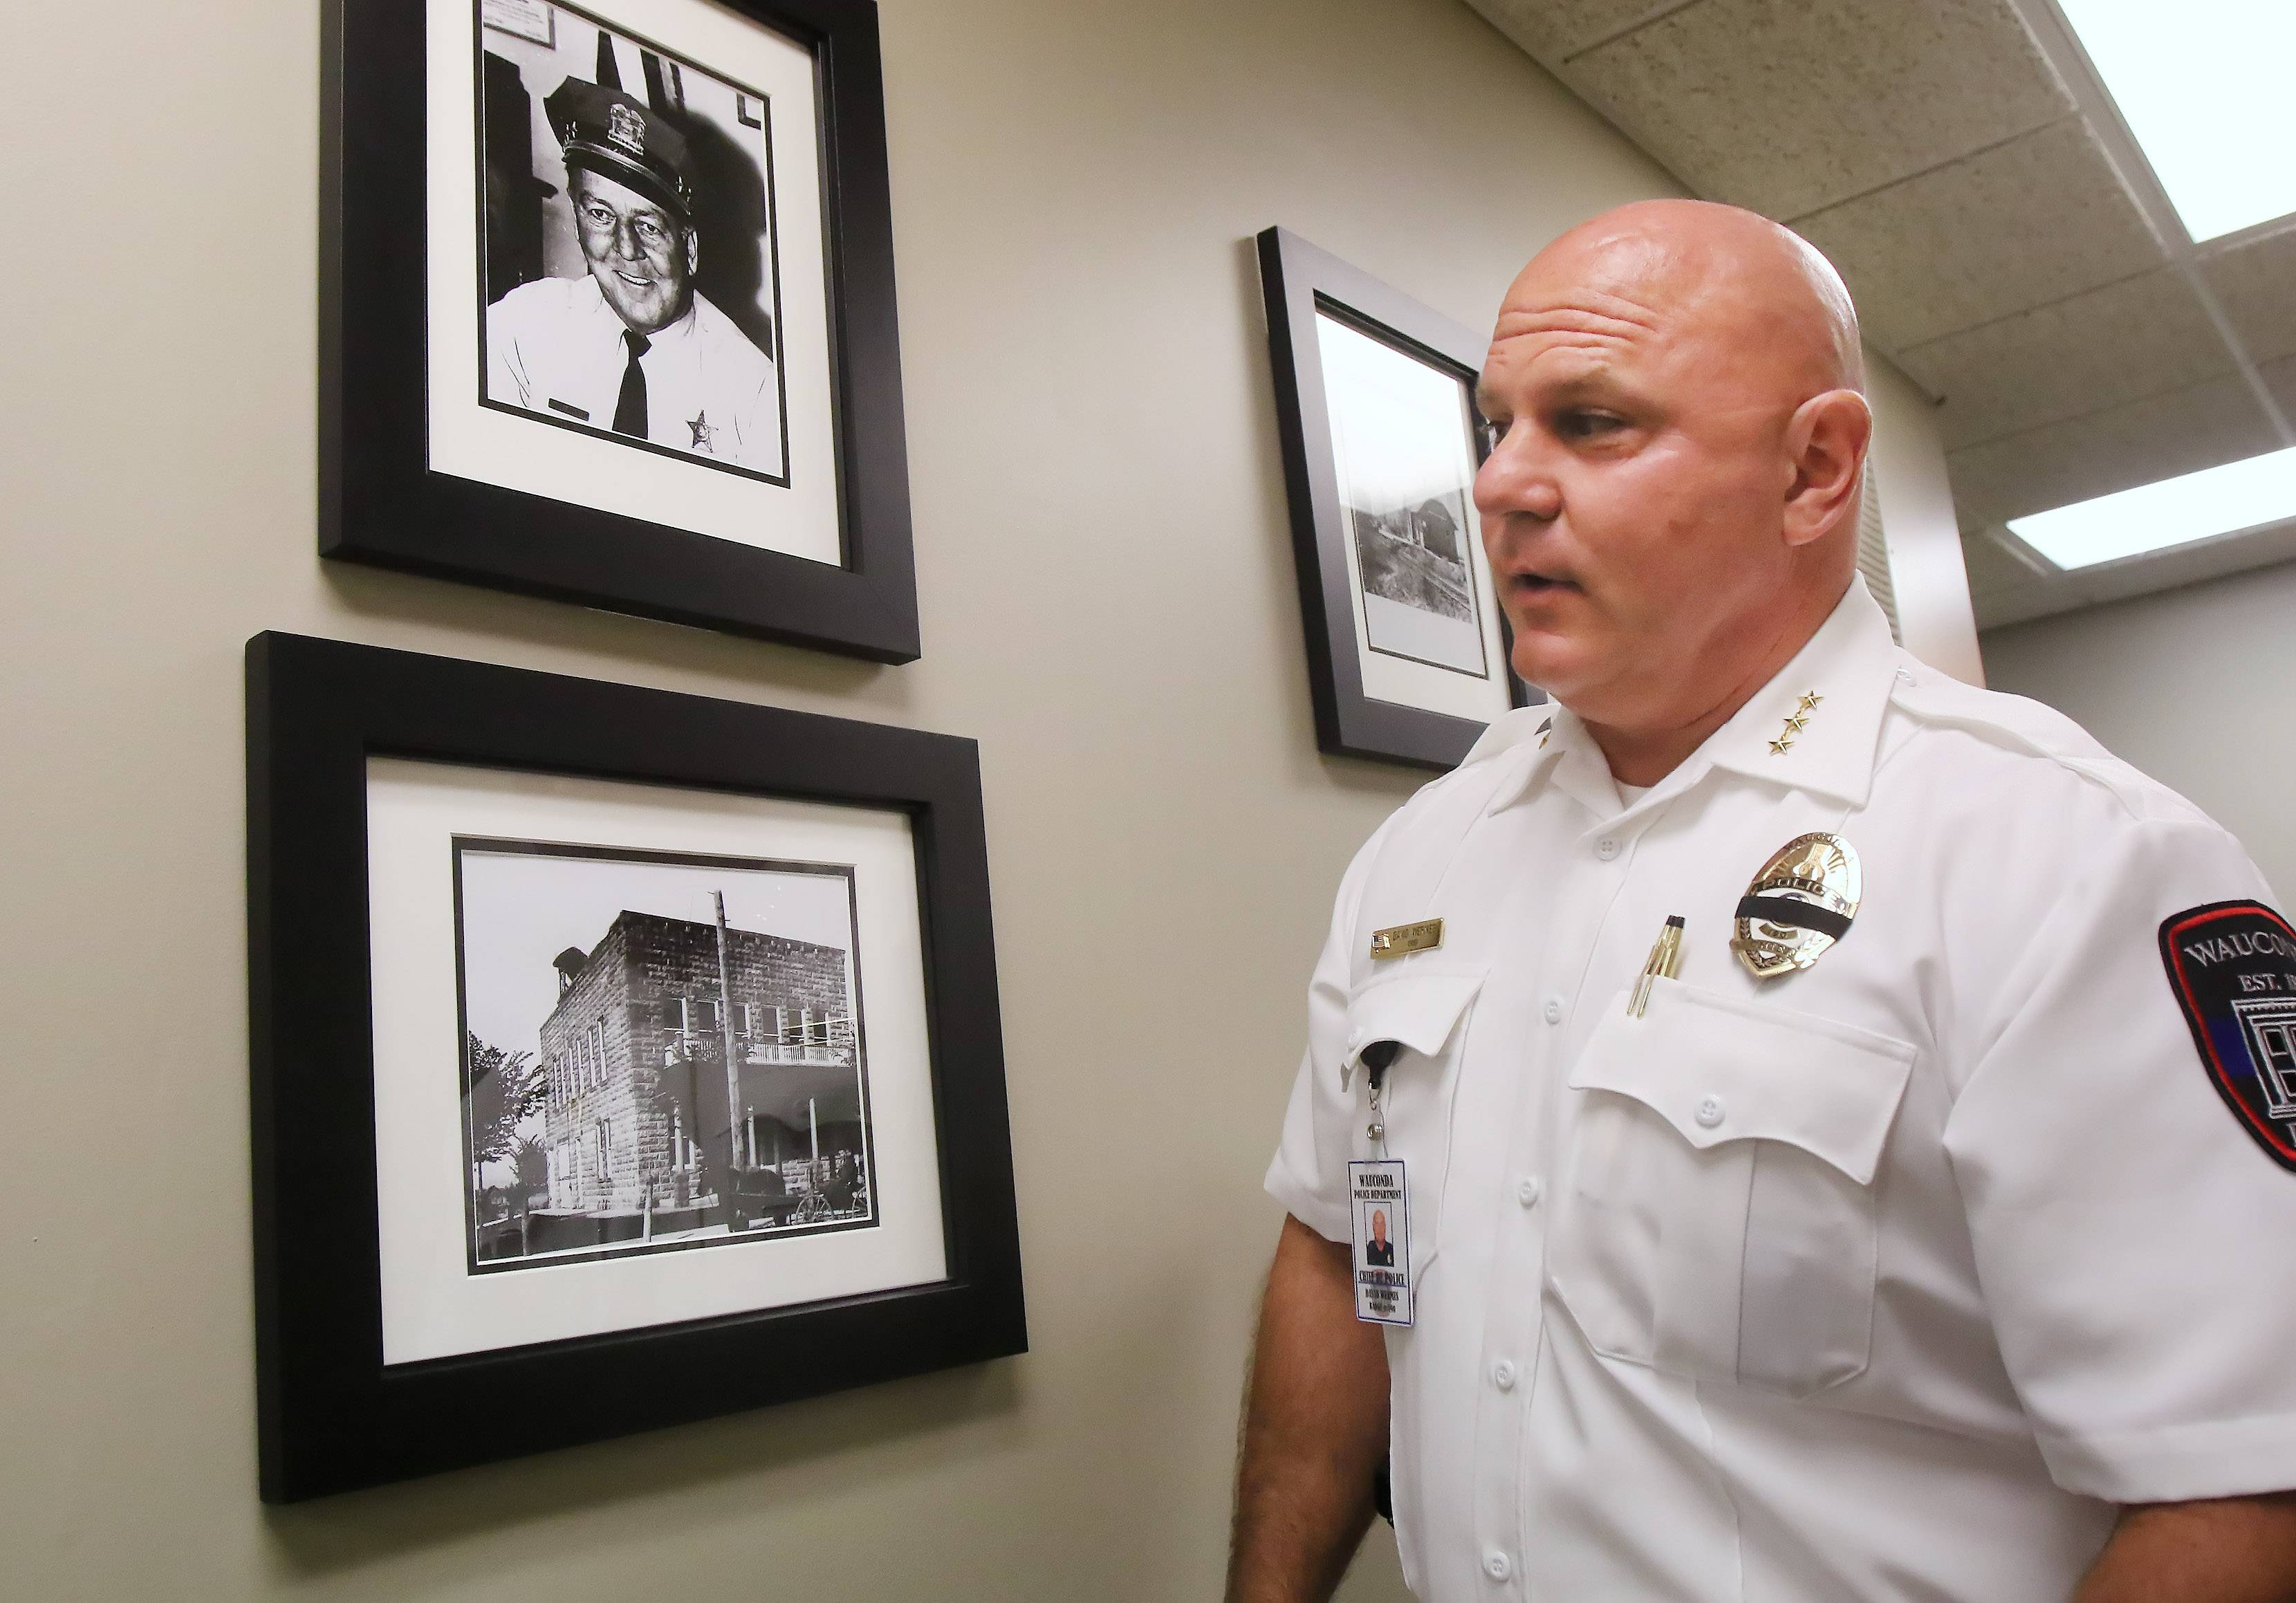 Wauconda police chief seeking historical photos of department